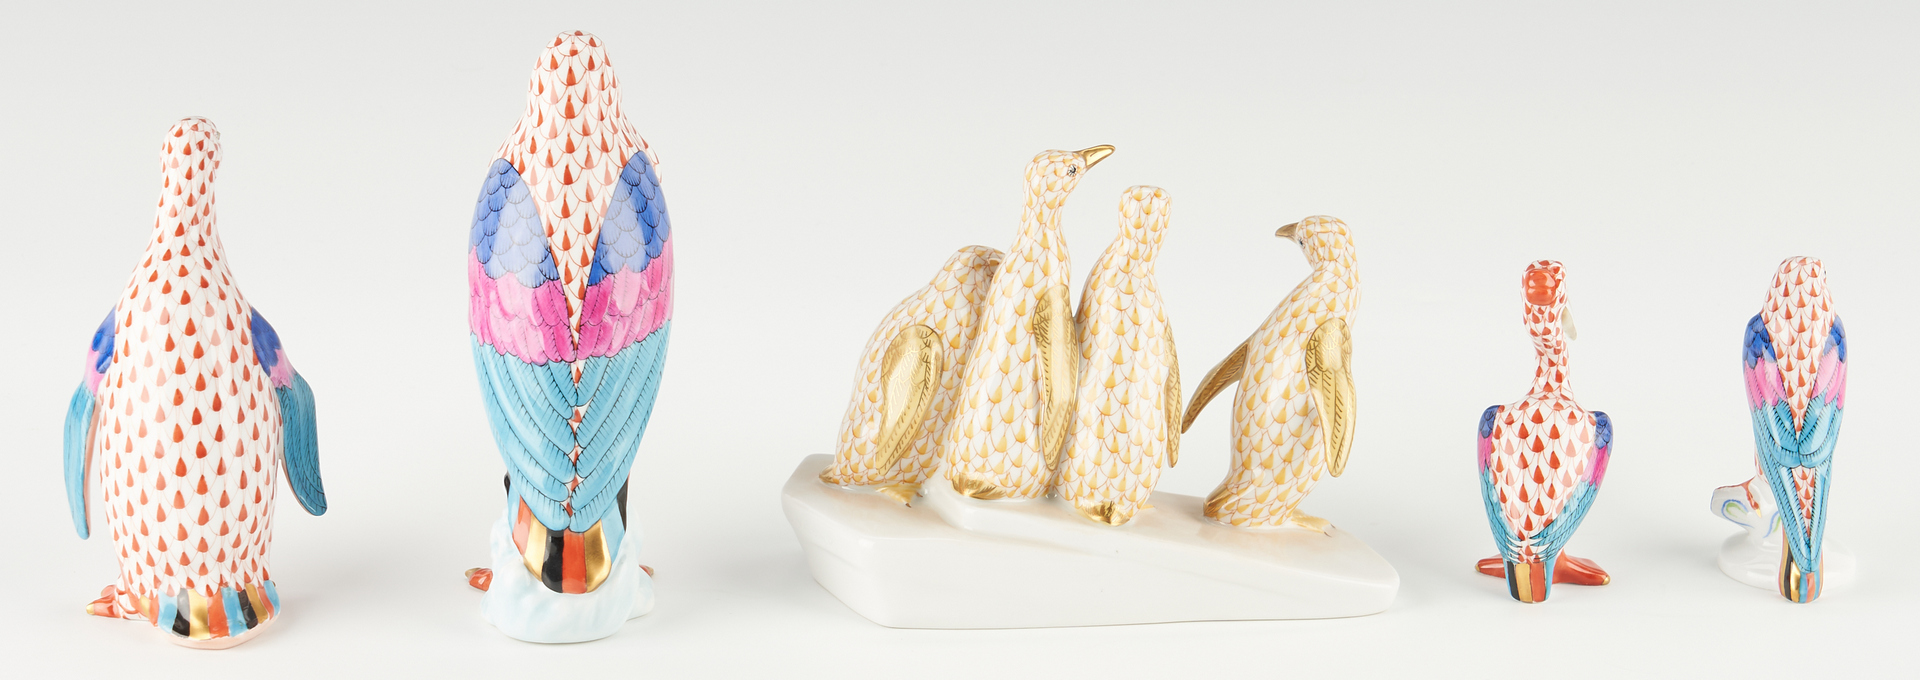 Lot 345: 5 Herend Bird Porcelain Figurines, incl. Penguins on Ice